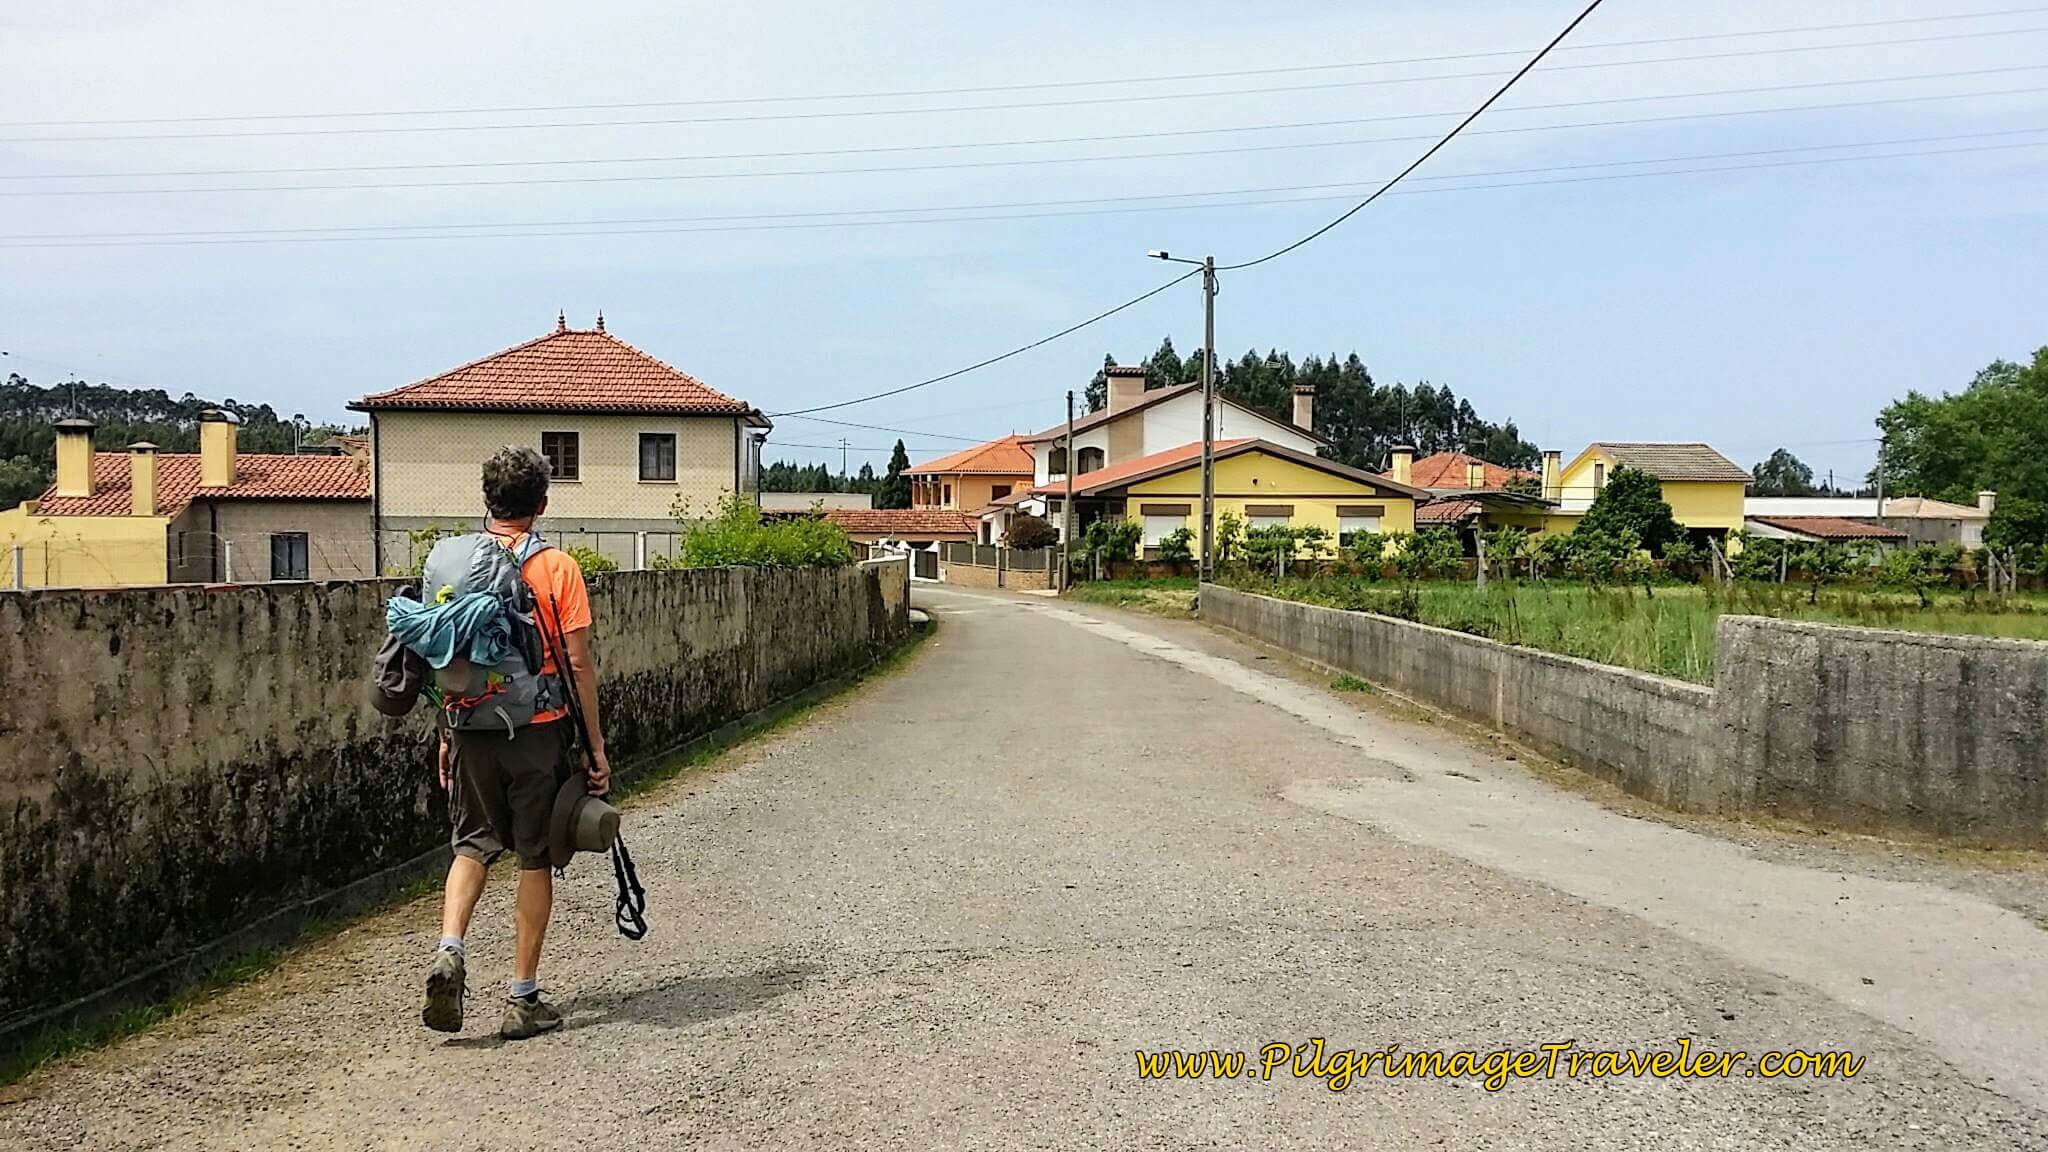 Approaching Albergaria-a-Nova on day twelve of the Camino Portugués